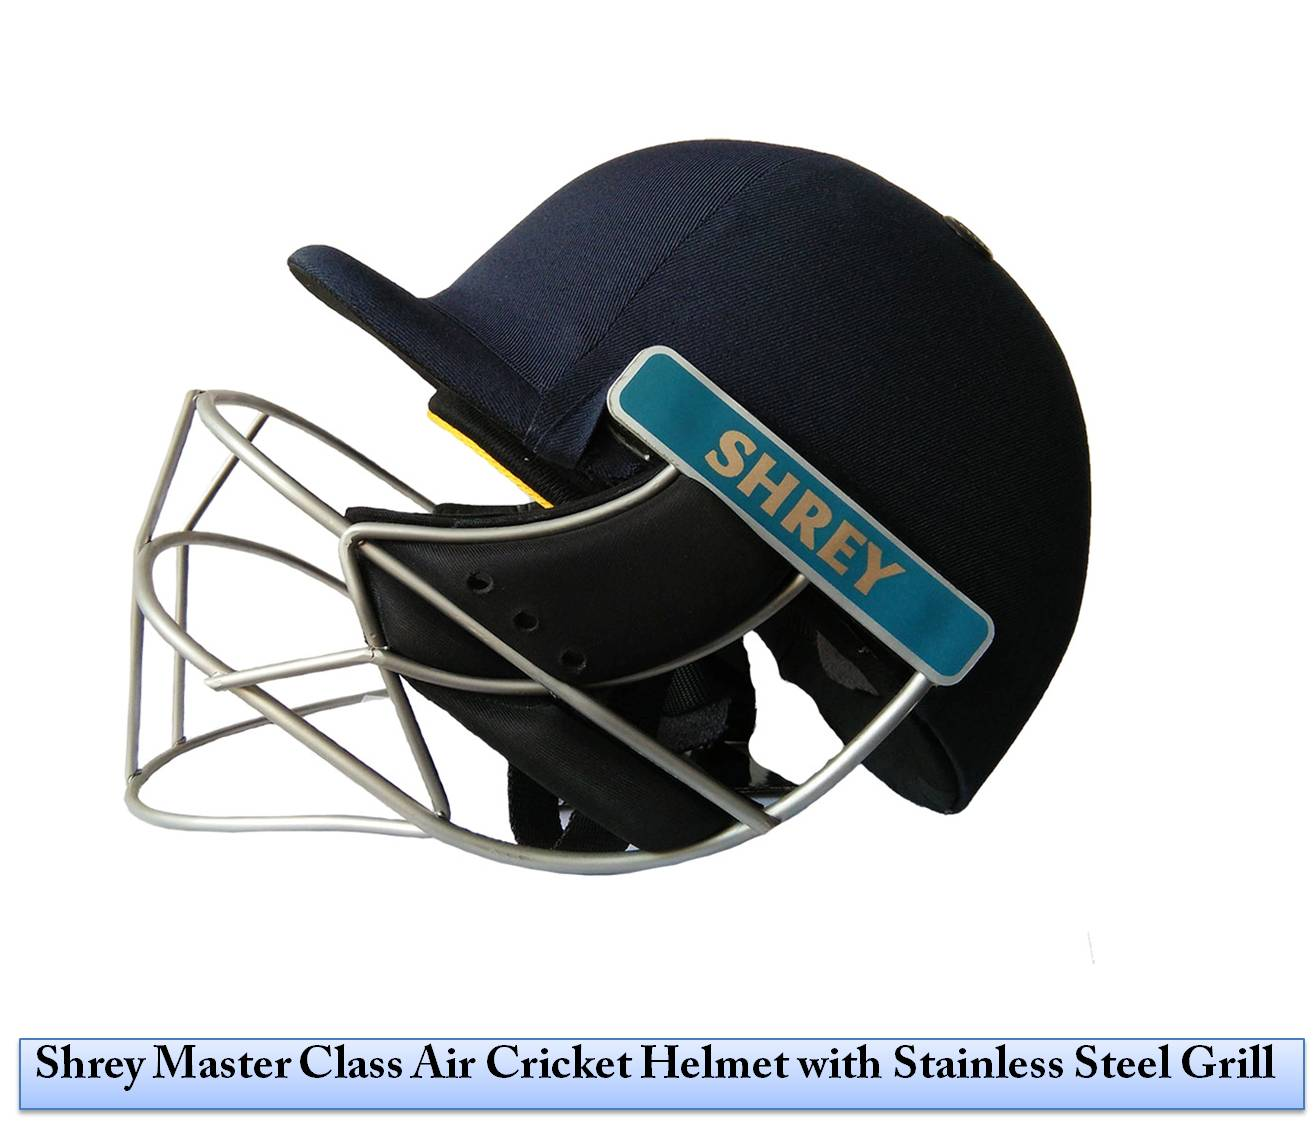 Shrey_Master_Class_Air_Cricket_Helmet_Blog_Image